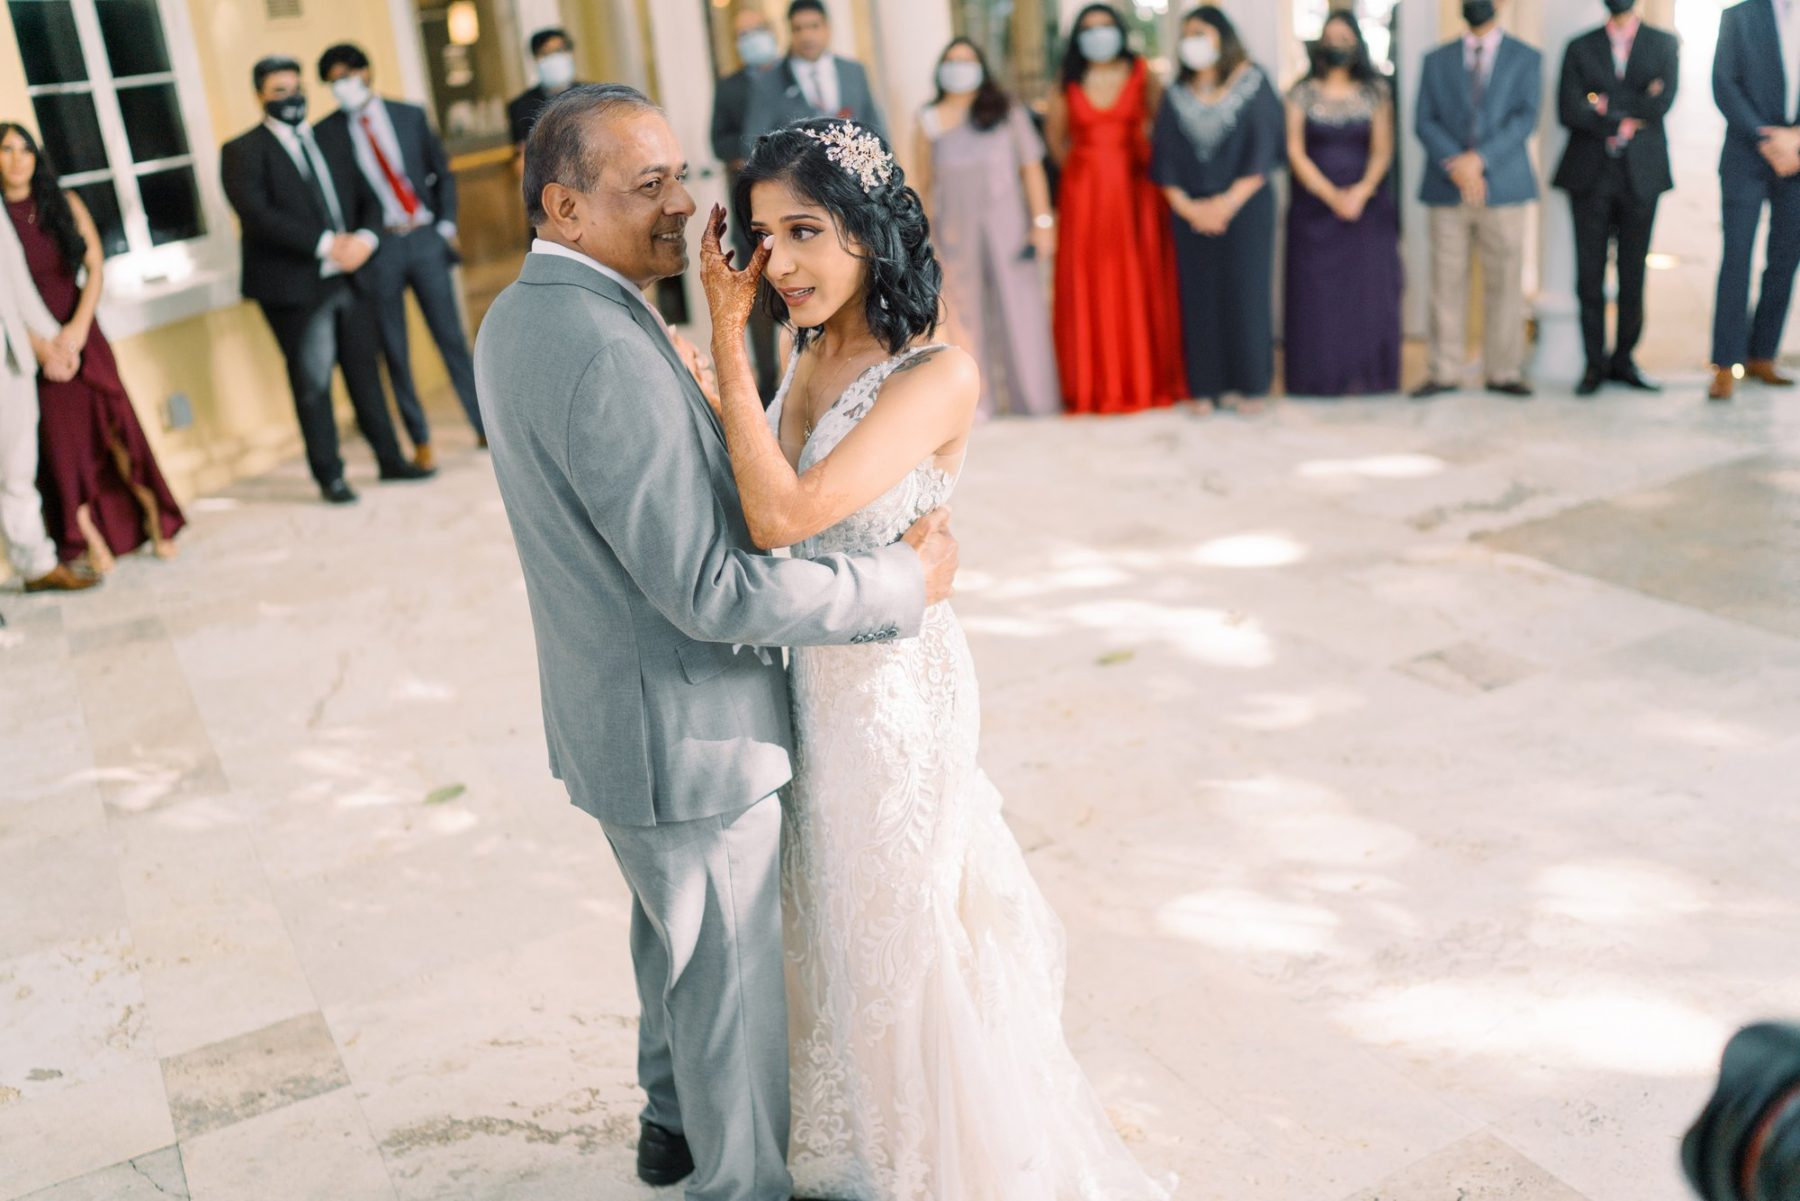 Sanjeev and Krisha, The Addison, Boca Raton Wedding Photos, Miami Wedding Photographers | Häring Photography, Indian Wedding Photographer in Florida, Best Muslim, Hindu - South East Asian Wedding Photographers